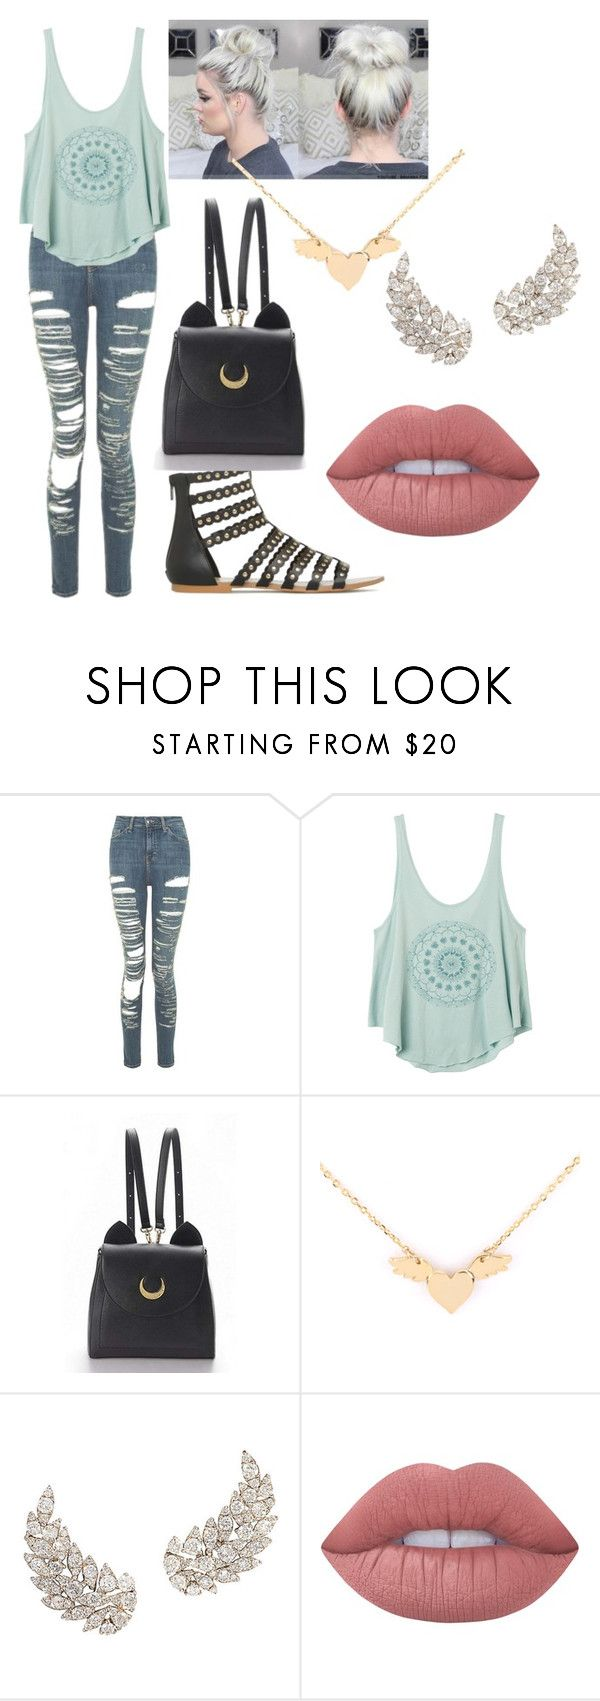 """""""weekend shopping day"""" by sweetieangelrose ❤ liked on Polyvore featuring Topshop, RVCA, WithChic and Lime Crime"""